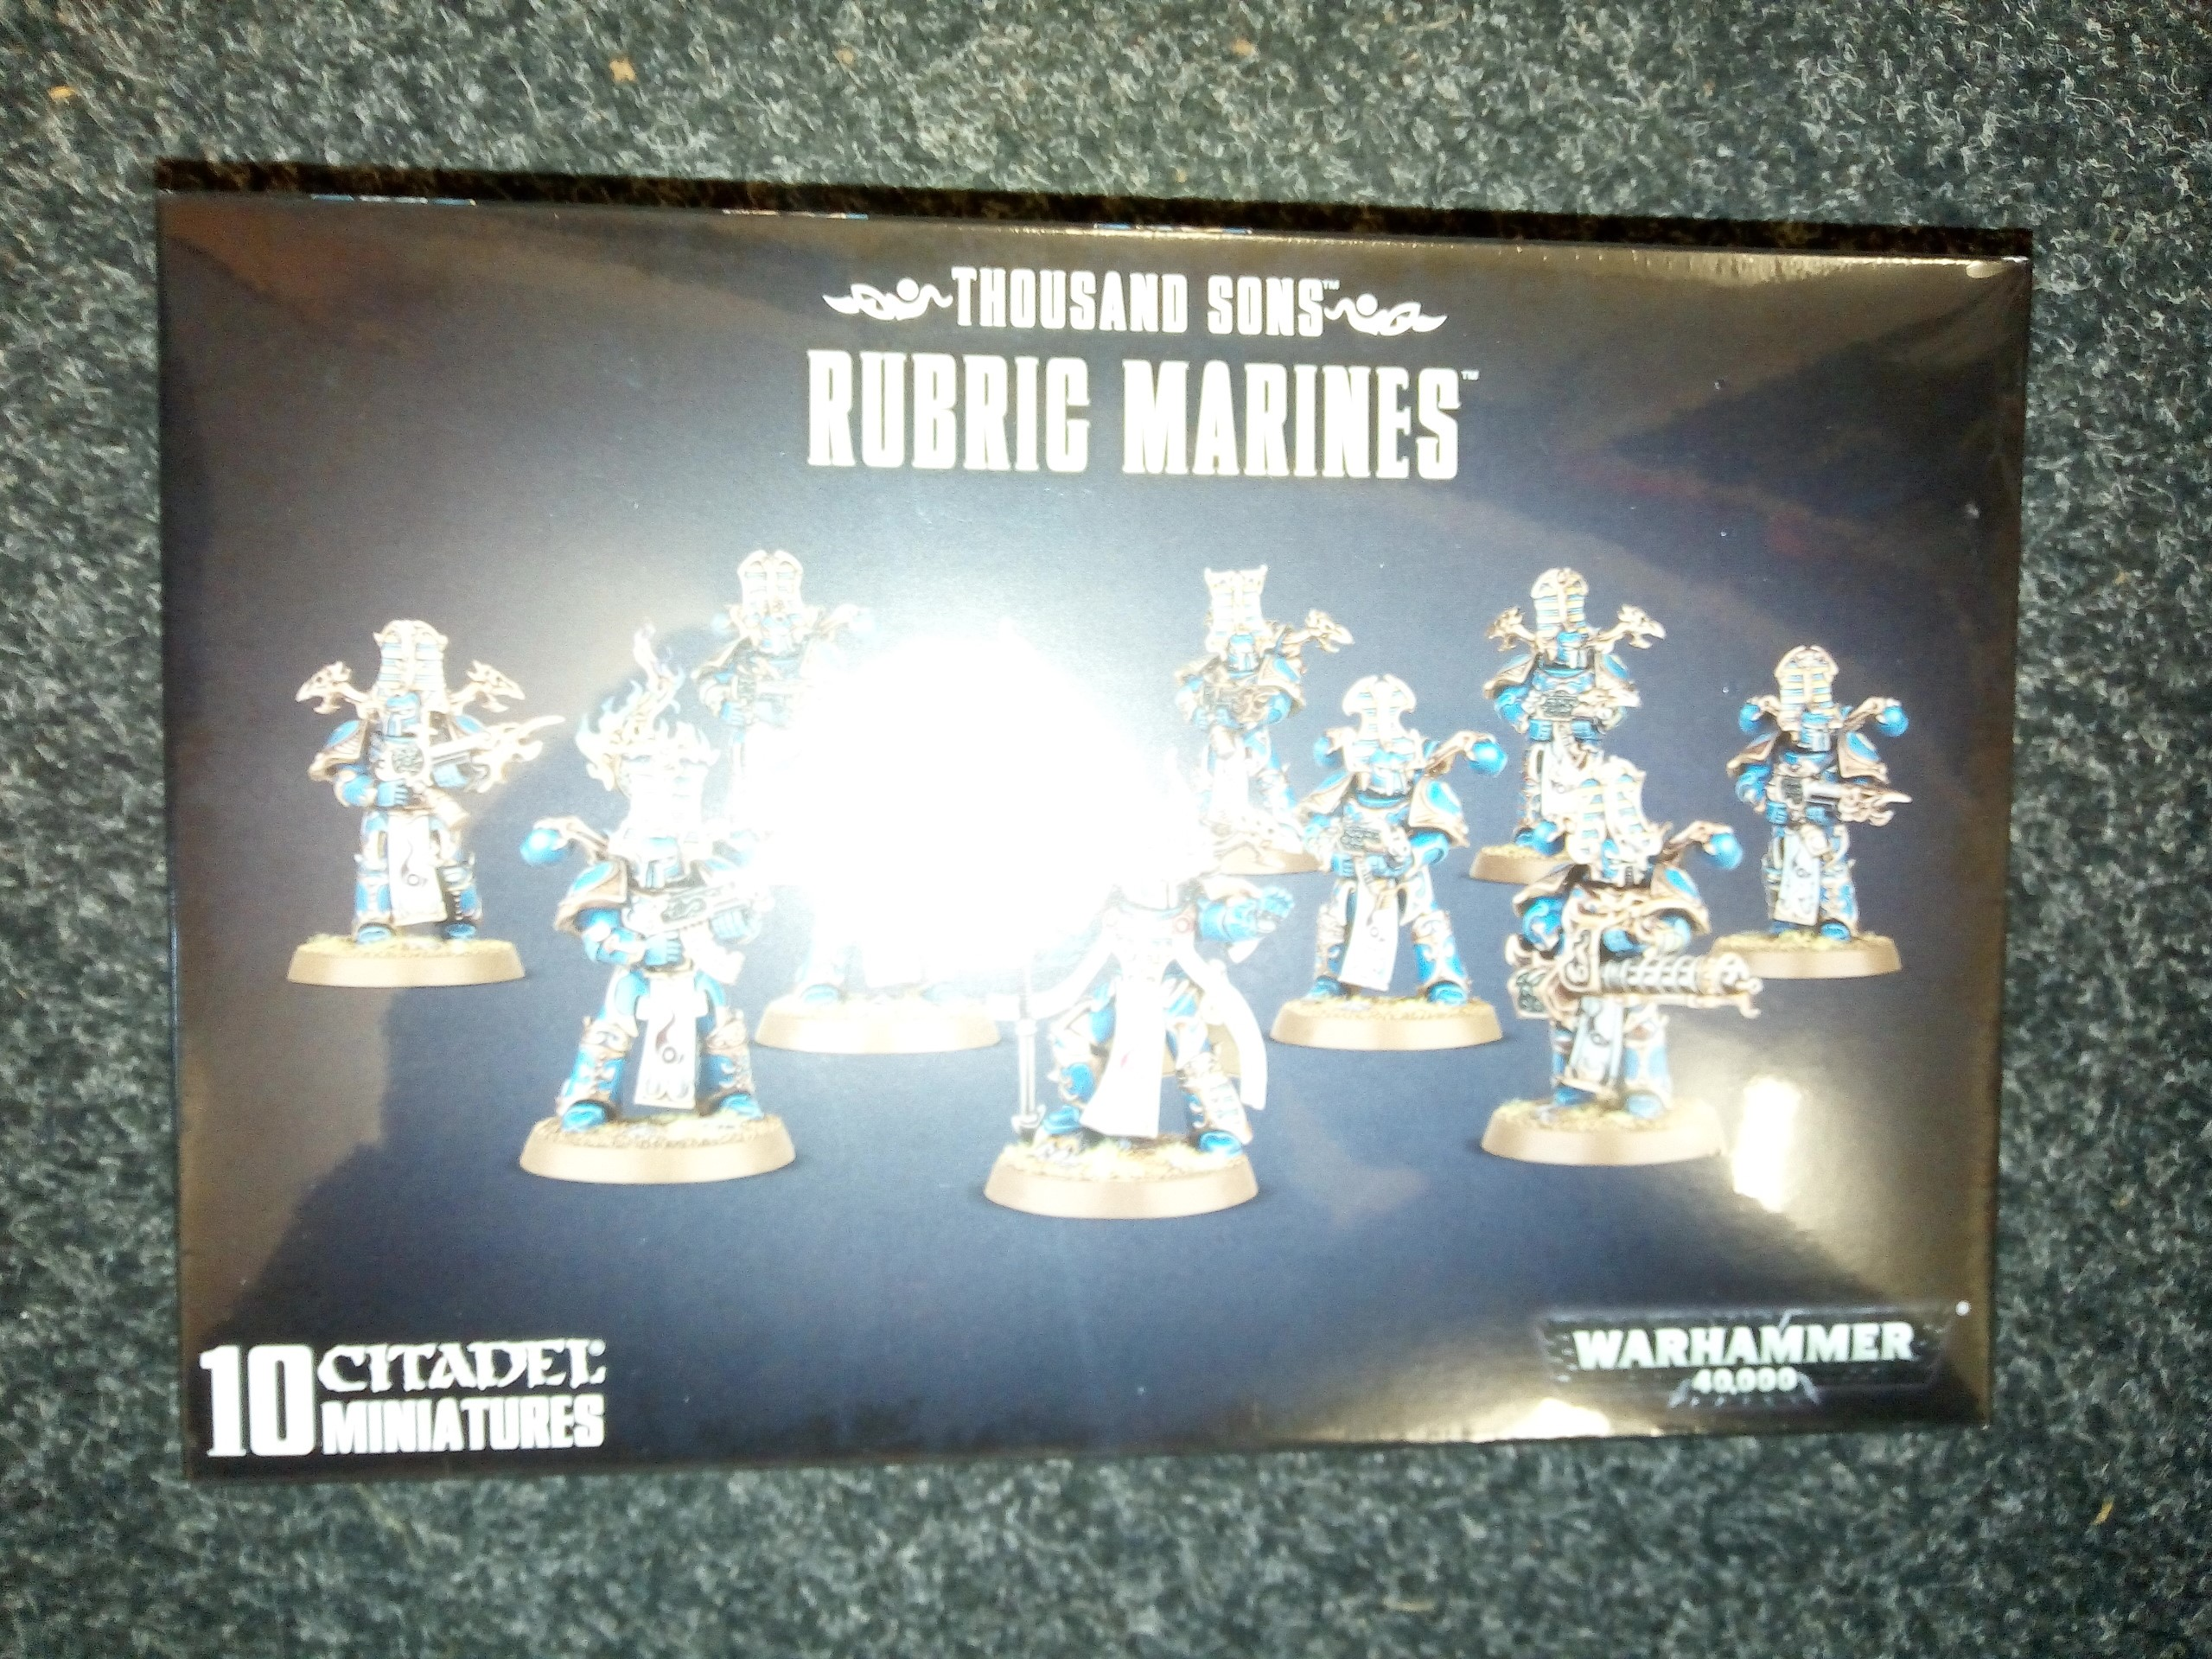 Warhammer 40K: Thousand Sons: Rubric Marines